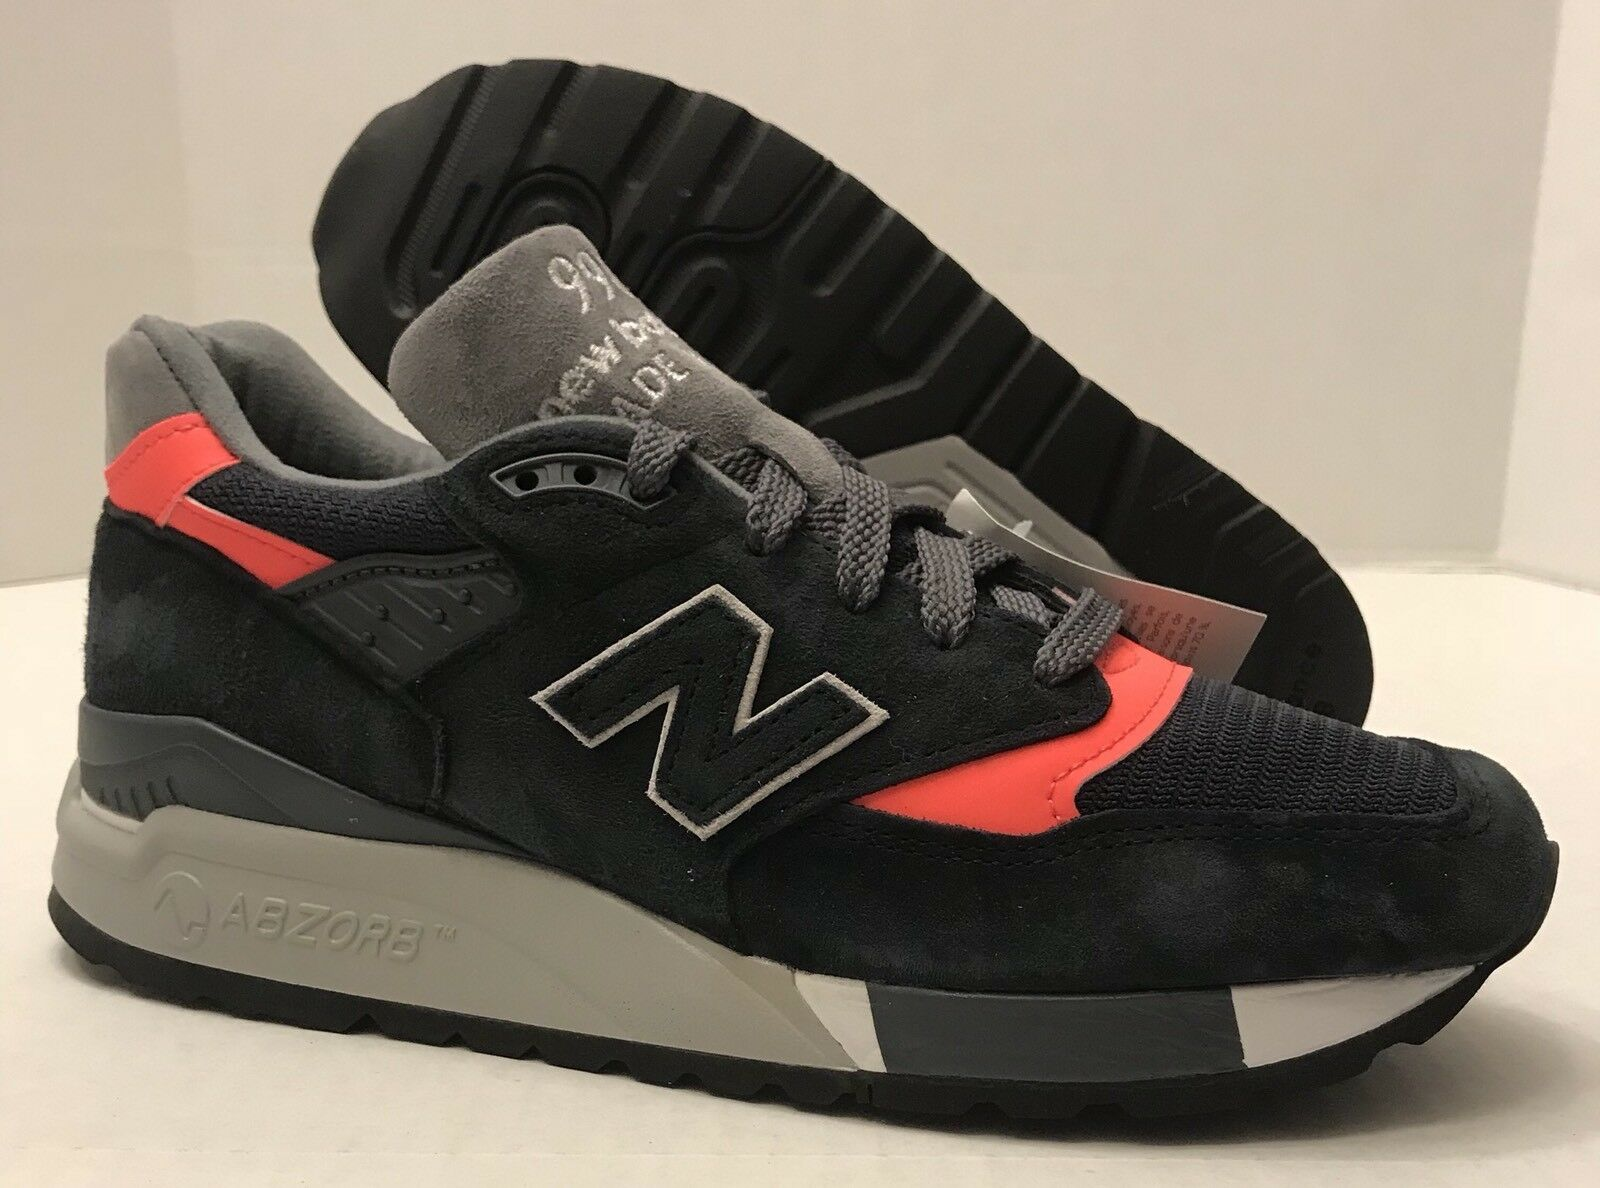 NEW BALANCE 998 Suede Shoes Made NAVY/PINK in The USA M998APC NAVY/PINK Made (MEN'S 6.5) NO BOX 66b66f